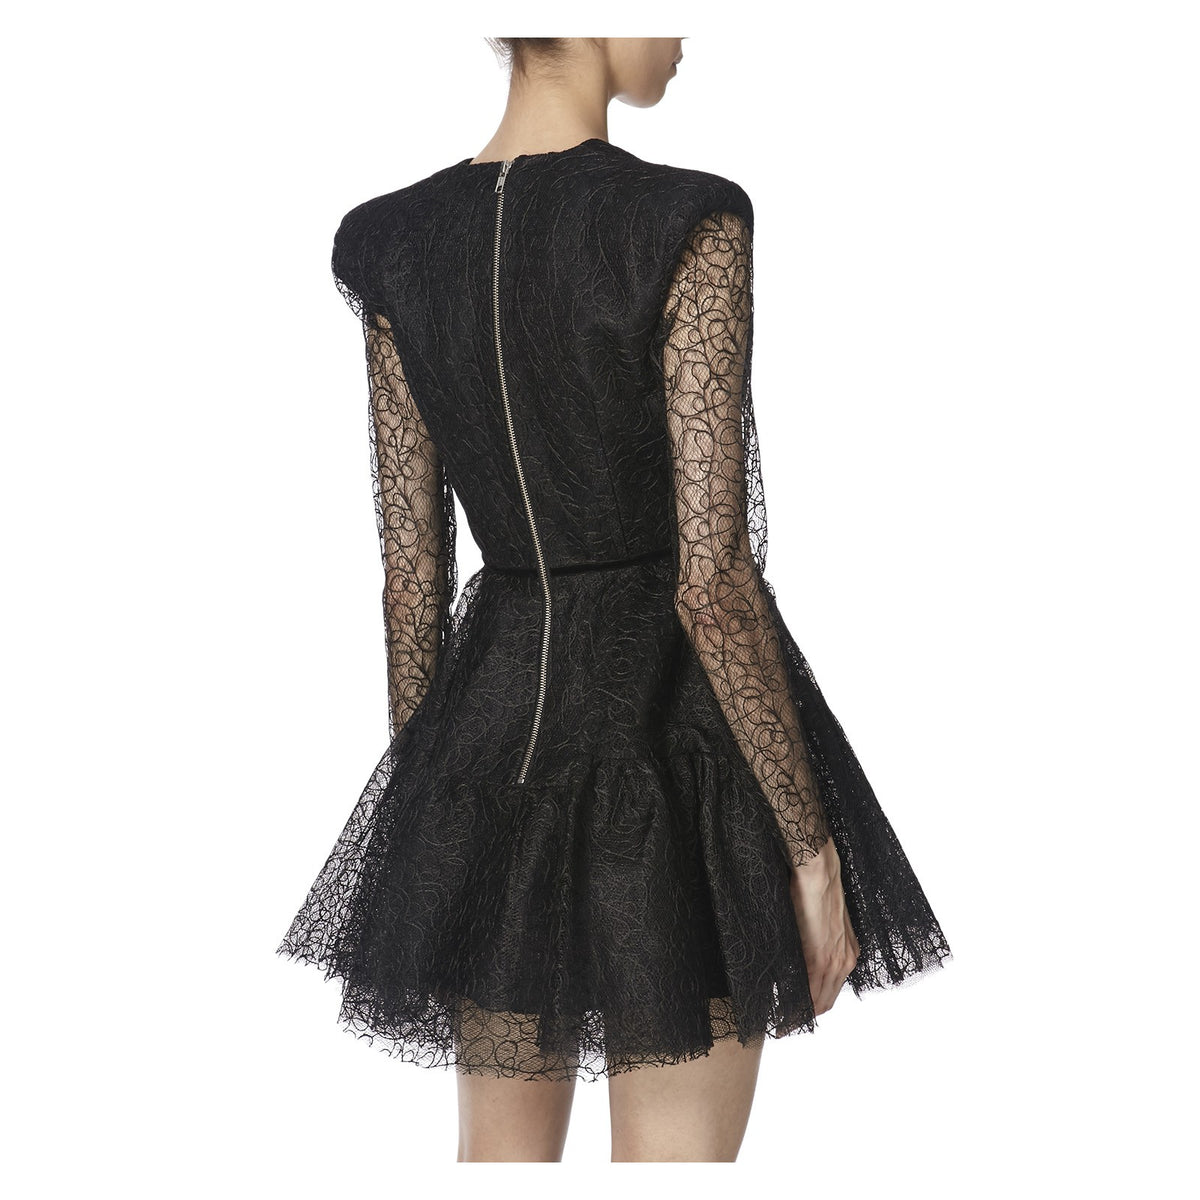 DIANA DRESS IN BLACK  BACK VIEW - THE BOX BOUTIQUE